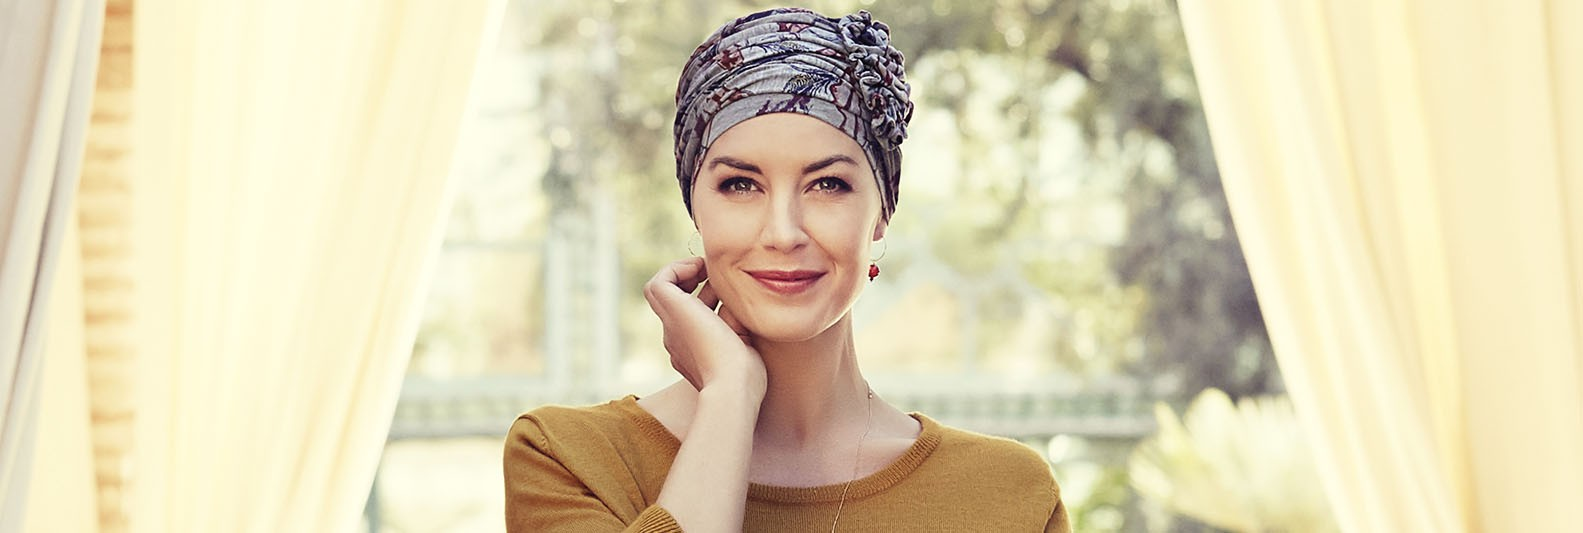 Foulards turbans chimio christine headwear